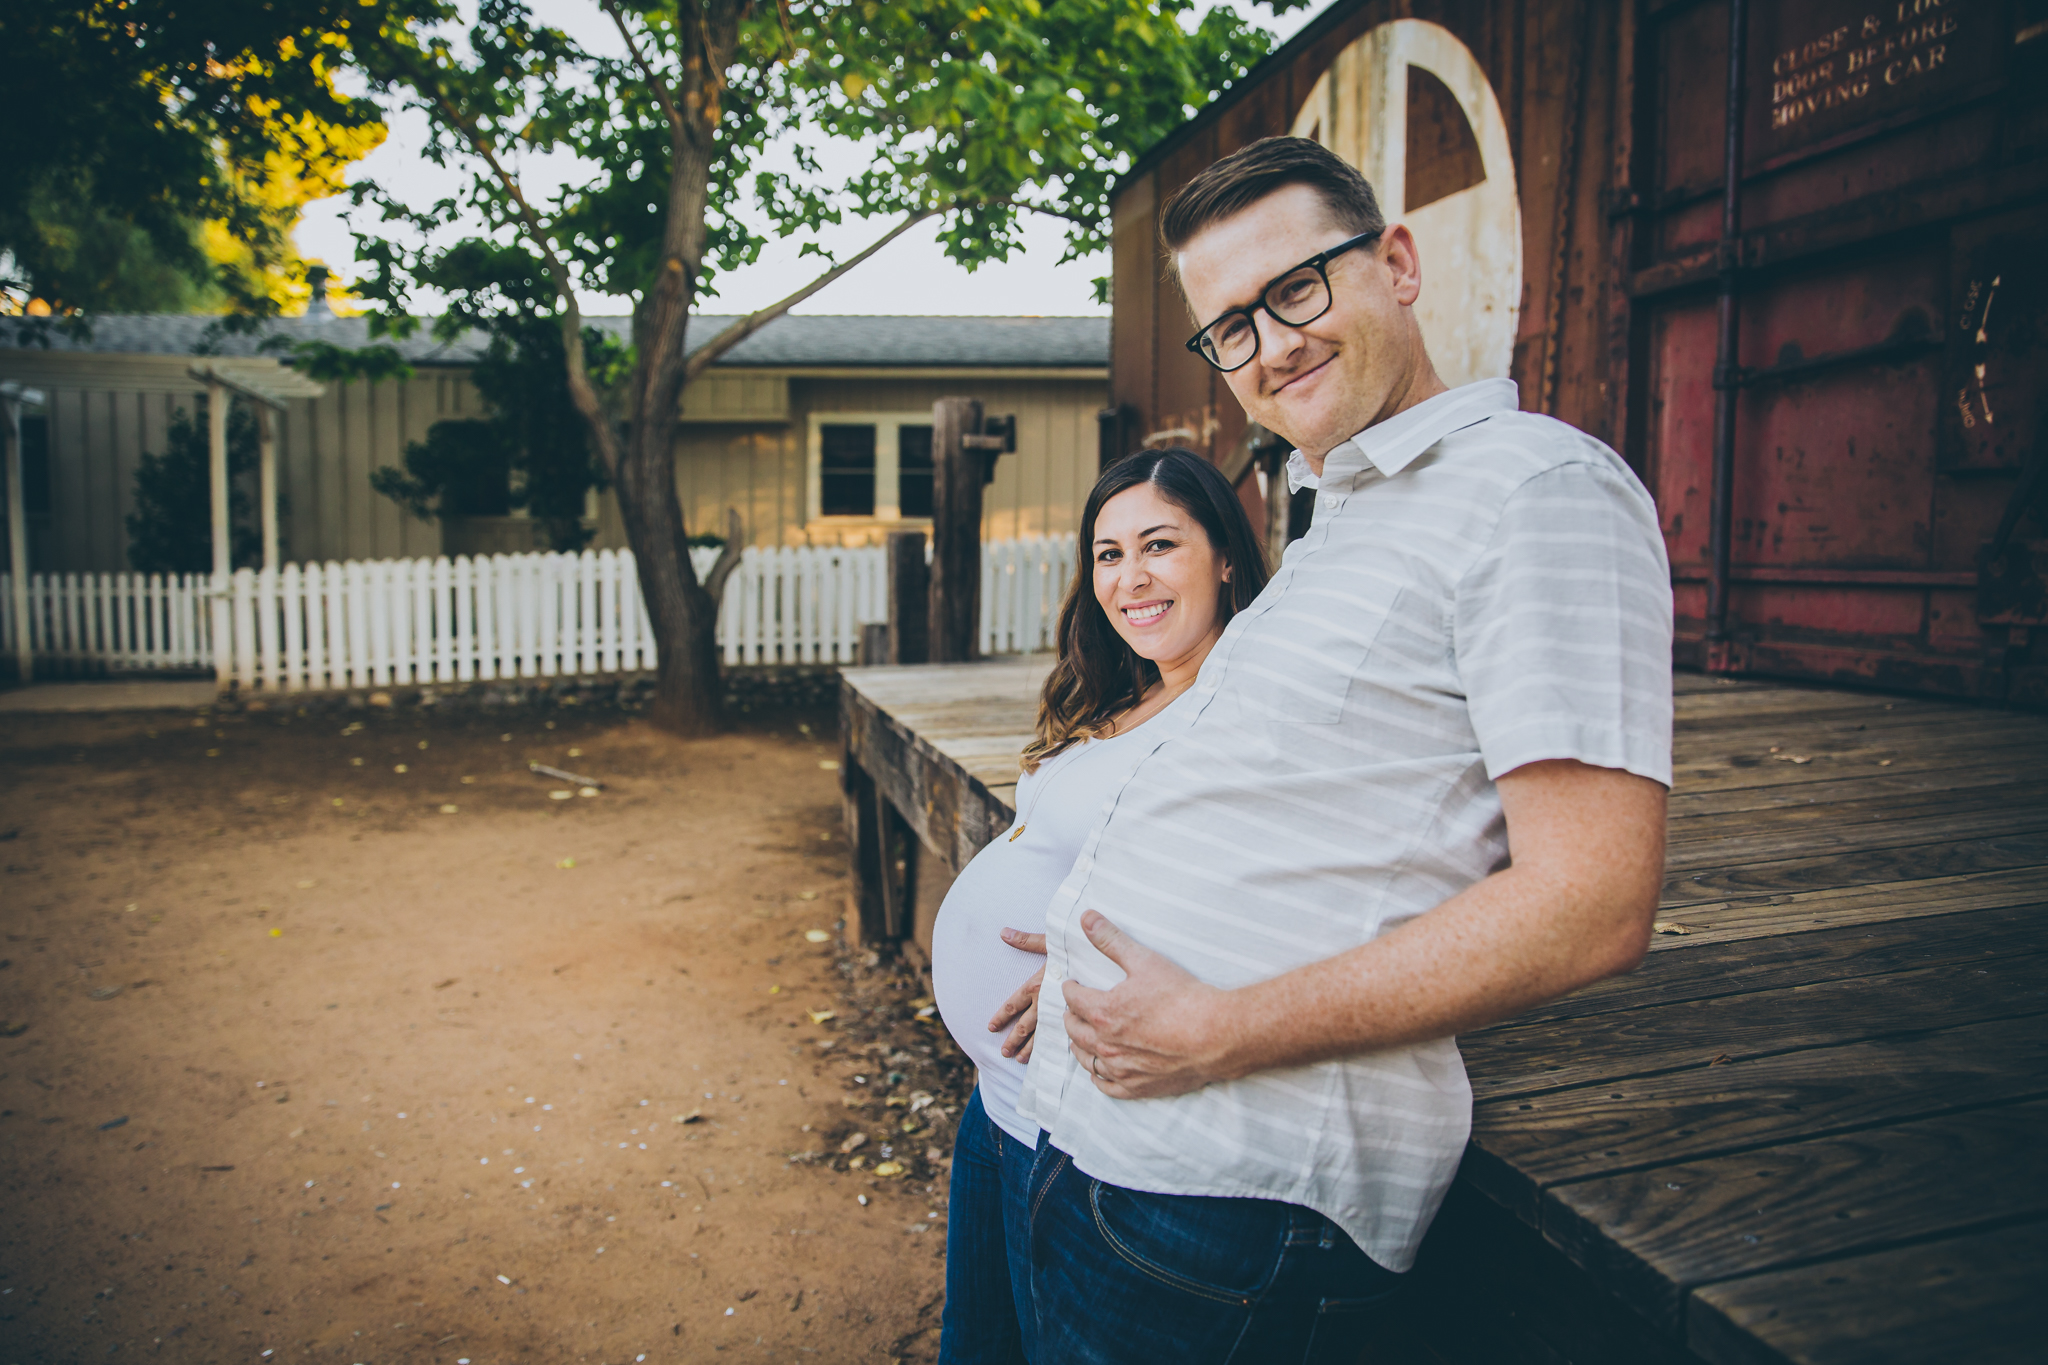 20150723-20150723 Michelle Maternity Picture40.jpg